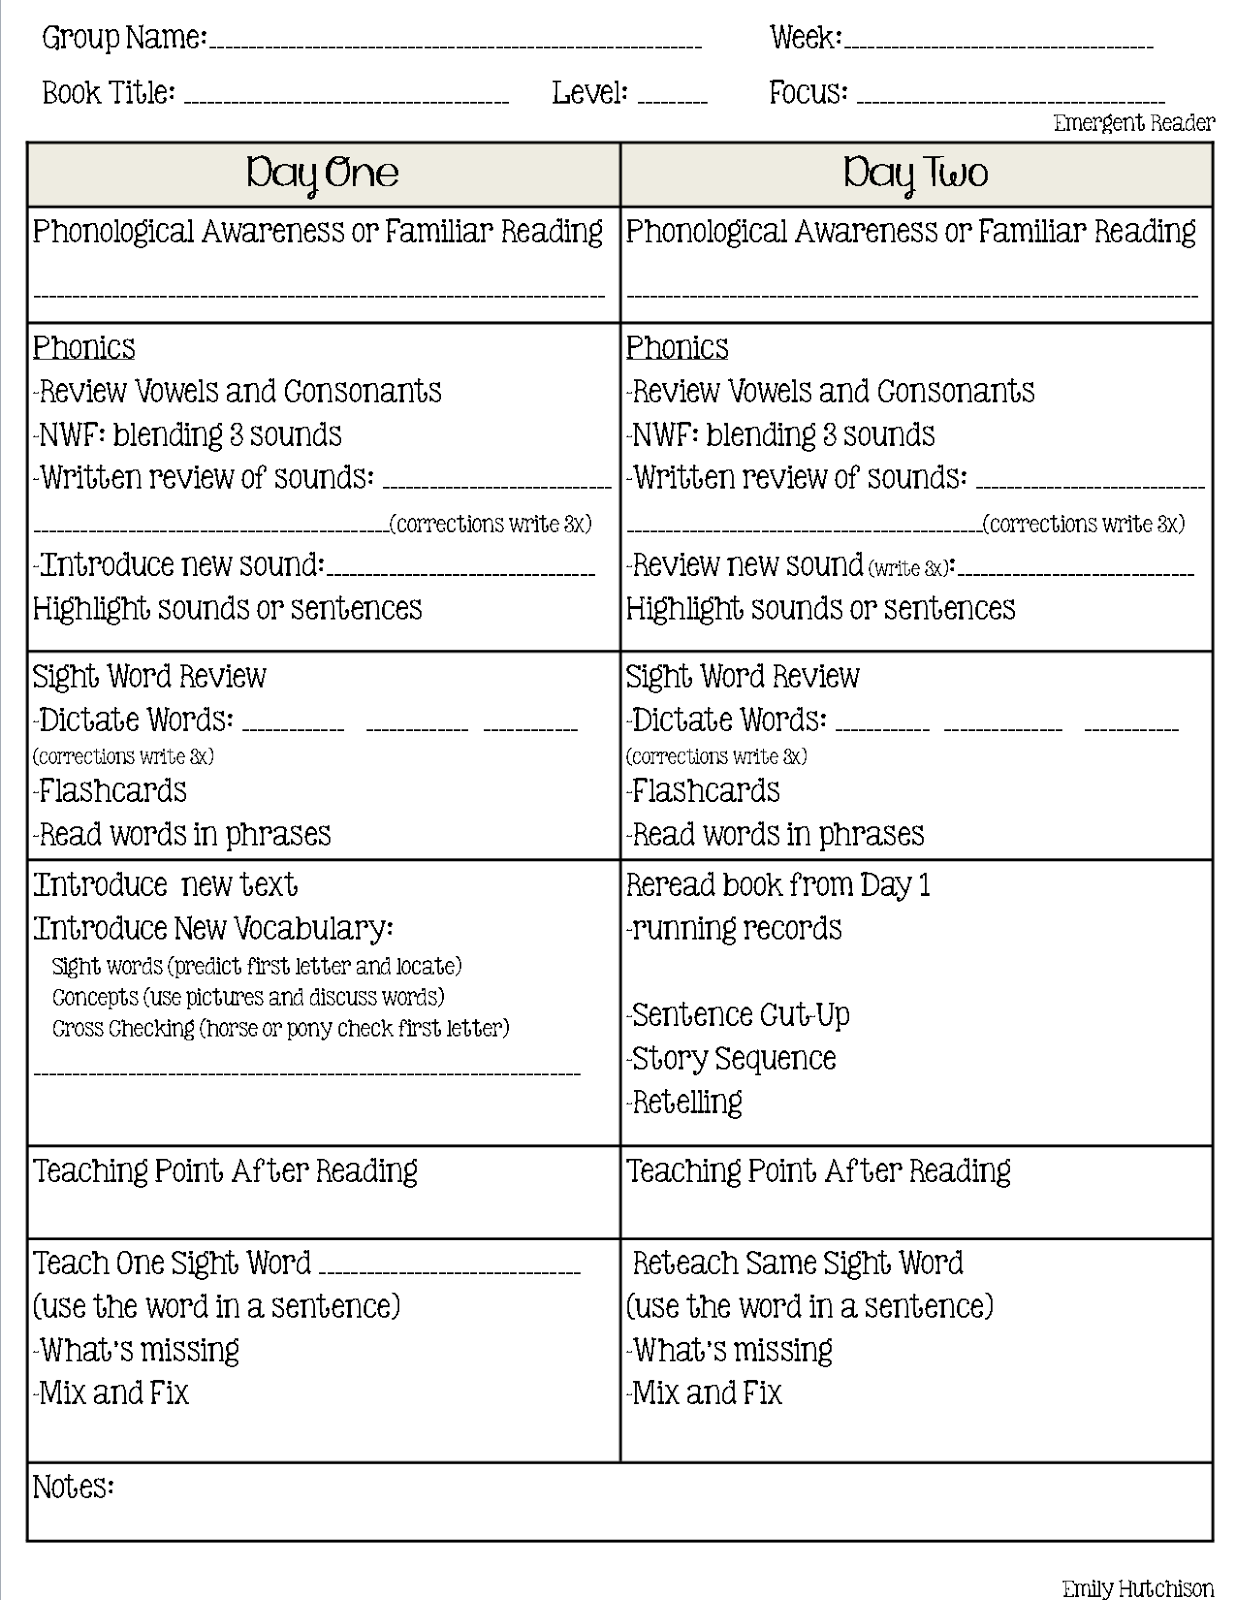 reading recovery lesson plan template - guided reading format a second look curious firsties